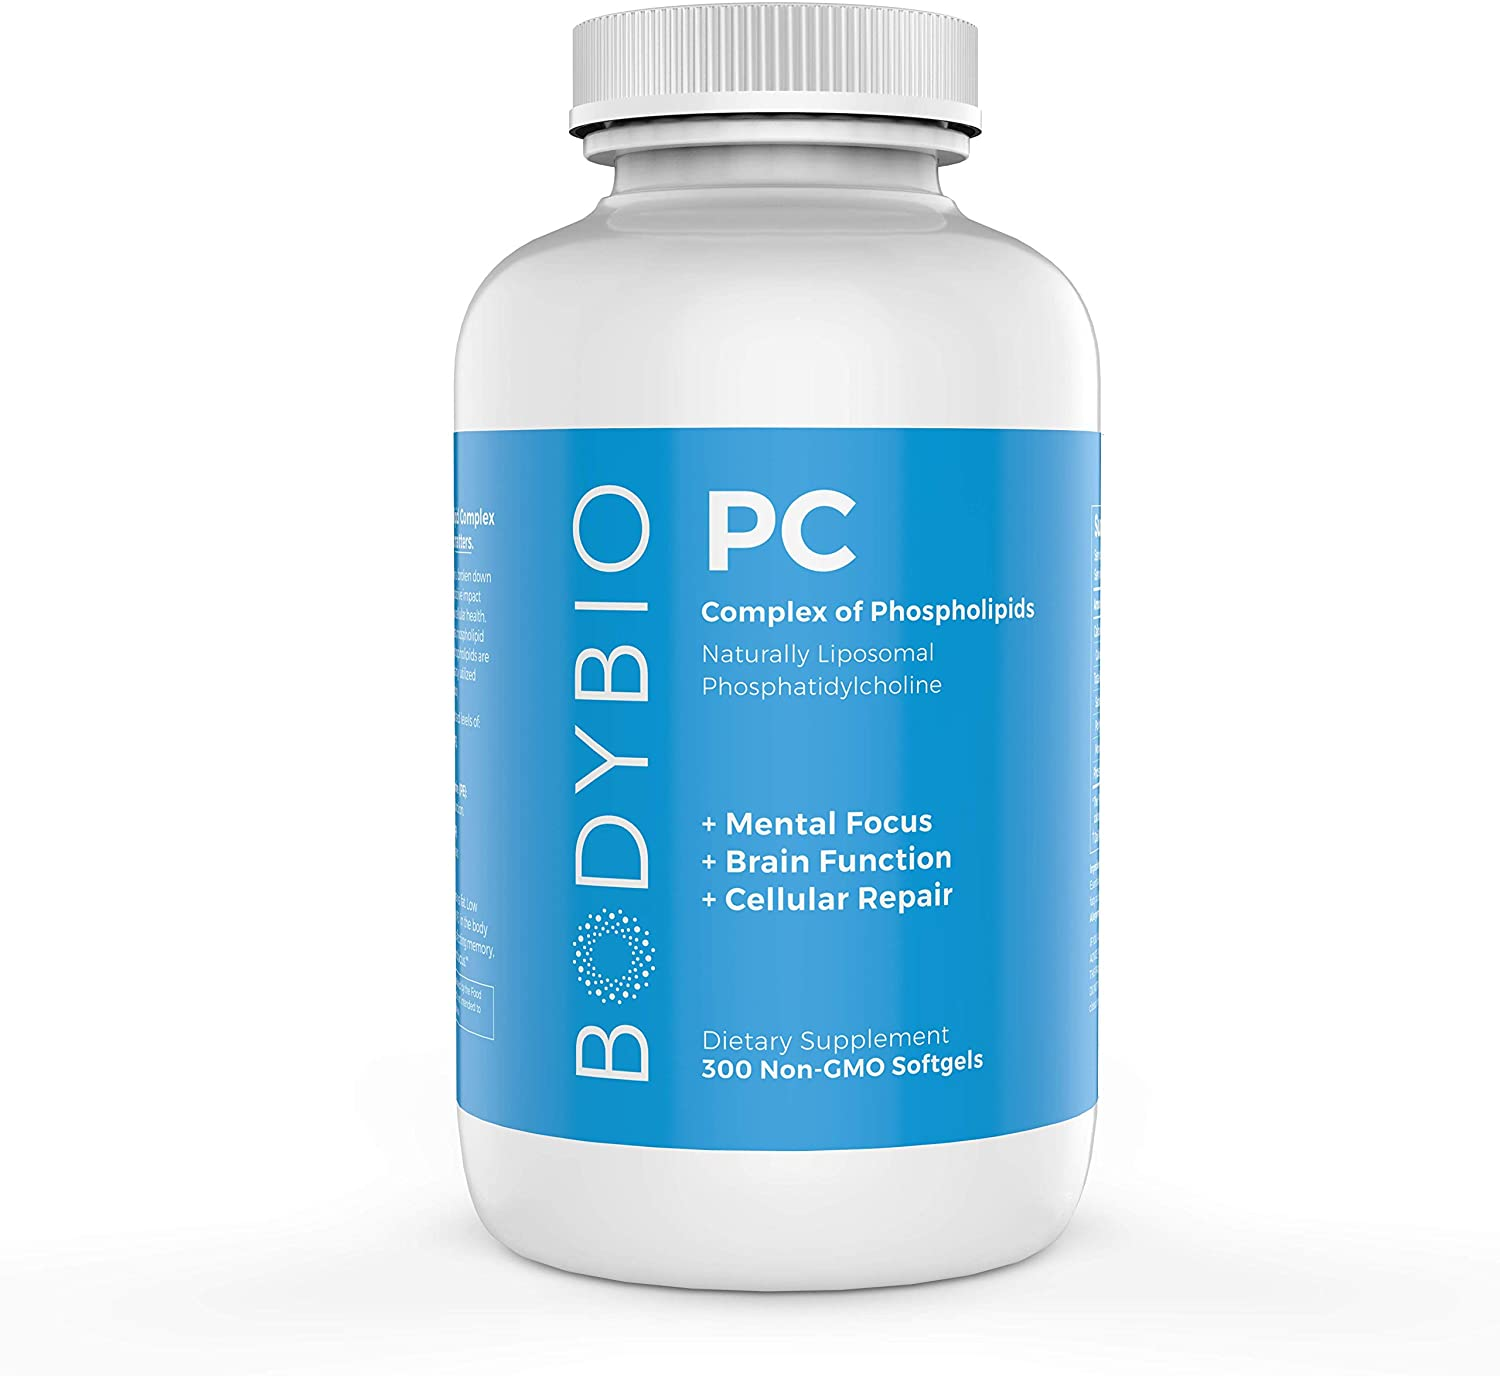 BodyBio PC Phosphatidylcholine + Phospholipids - 300 Tablet